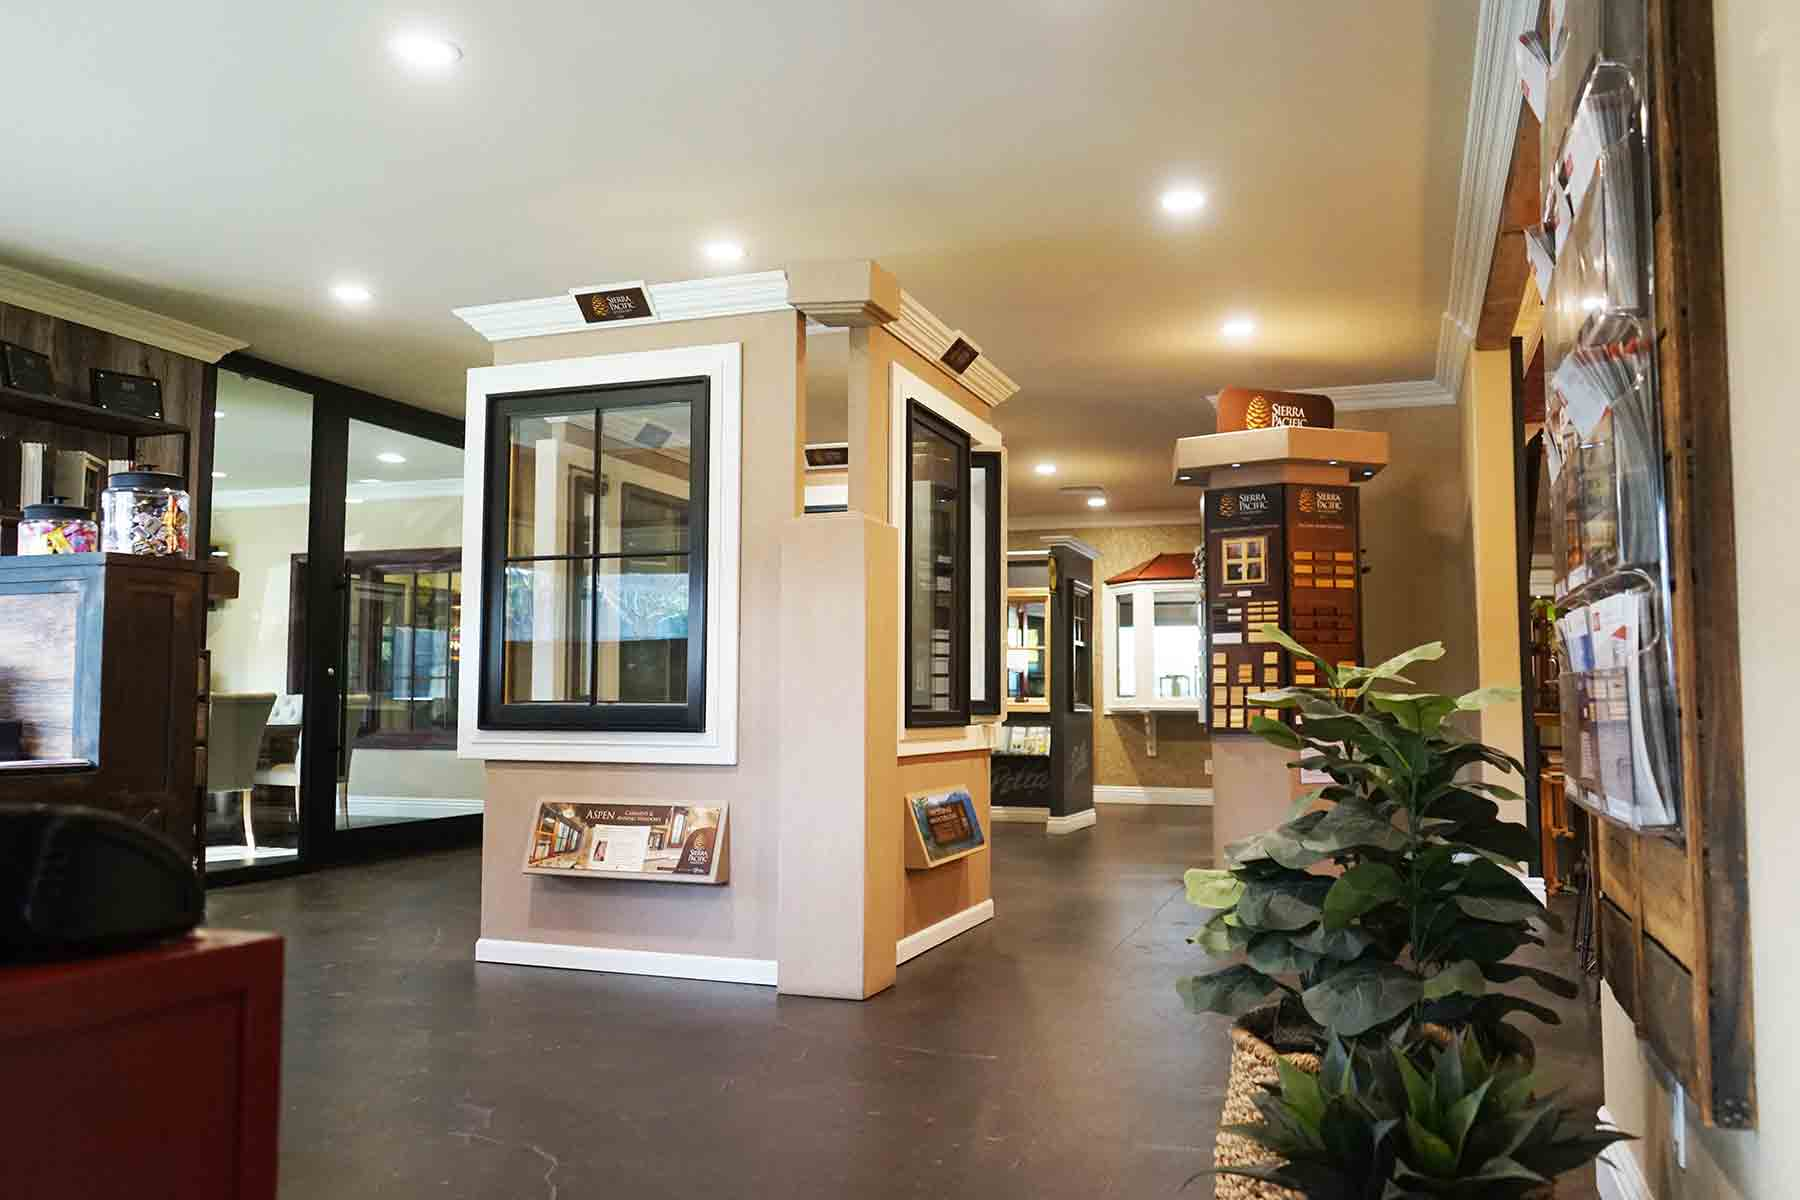 Window installation company based in Placentia